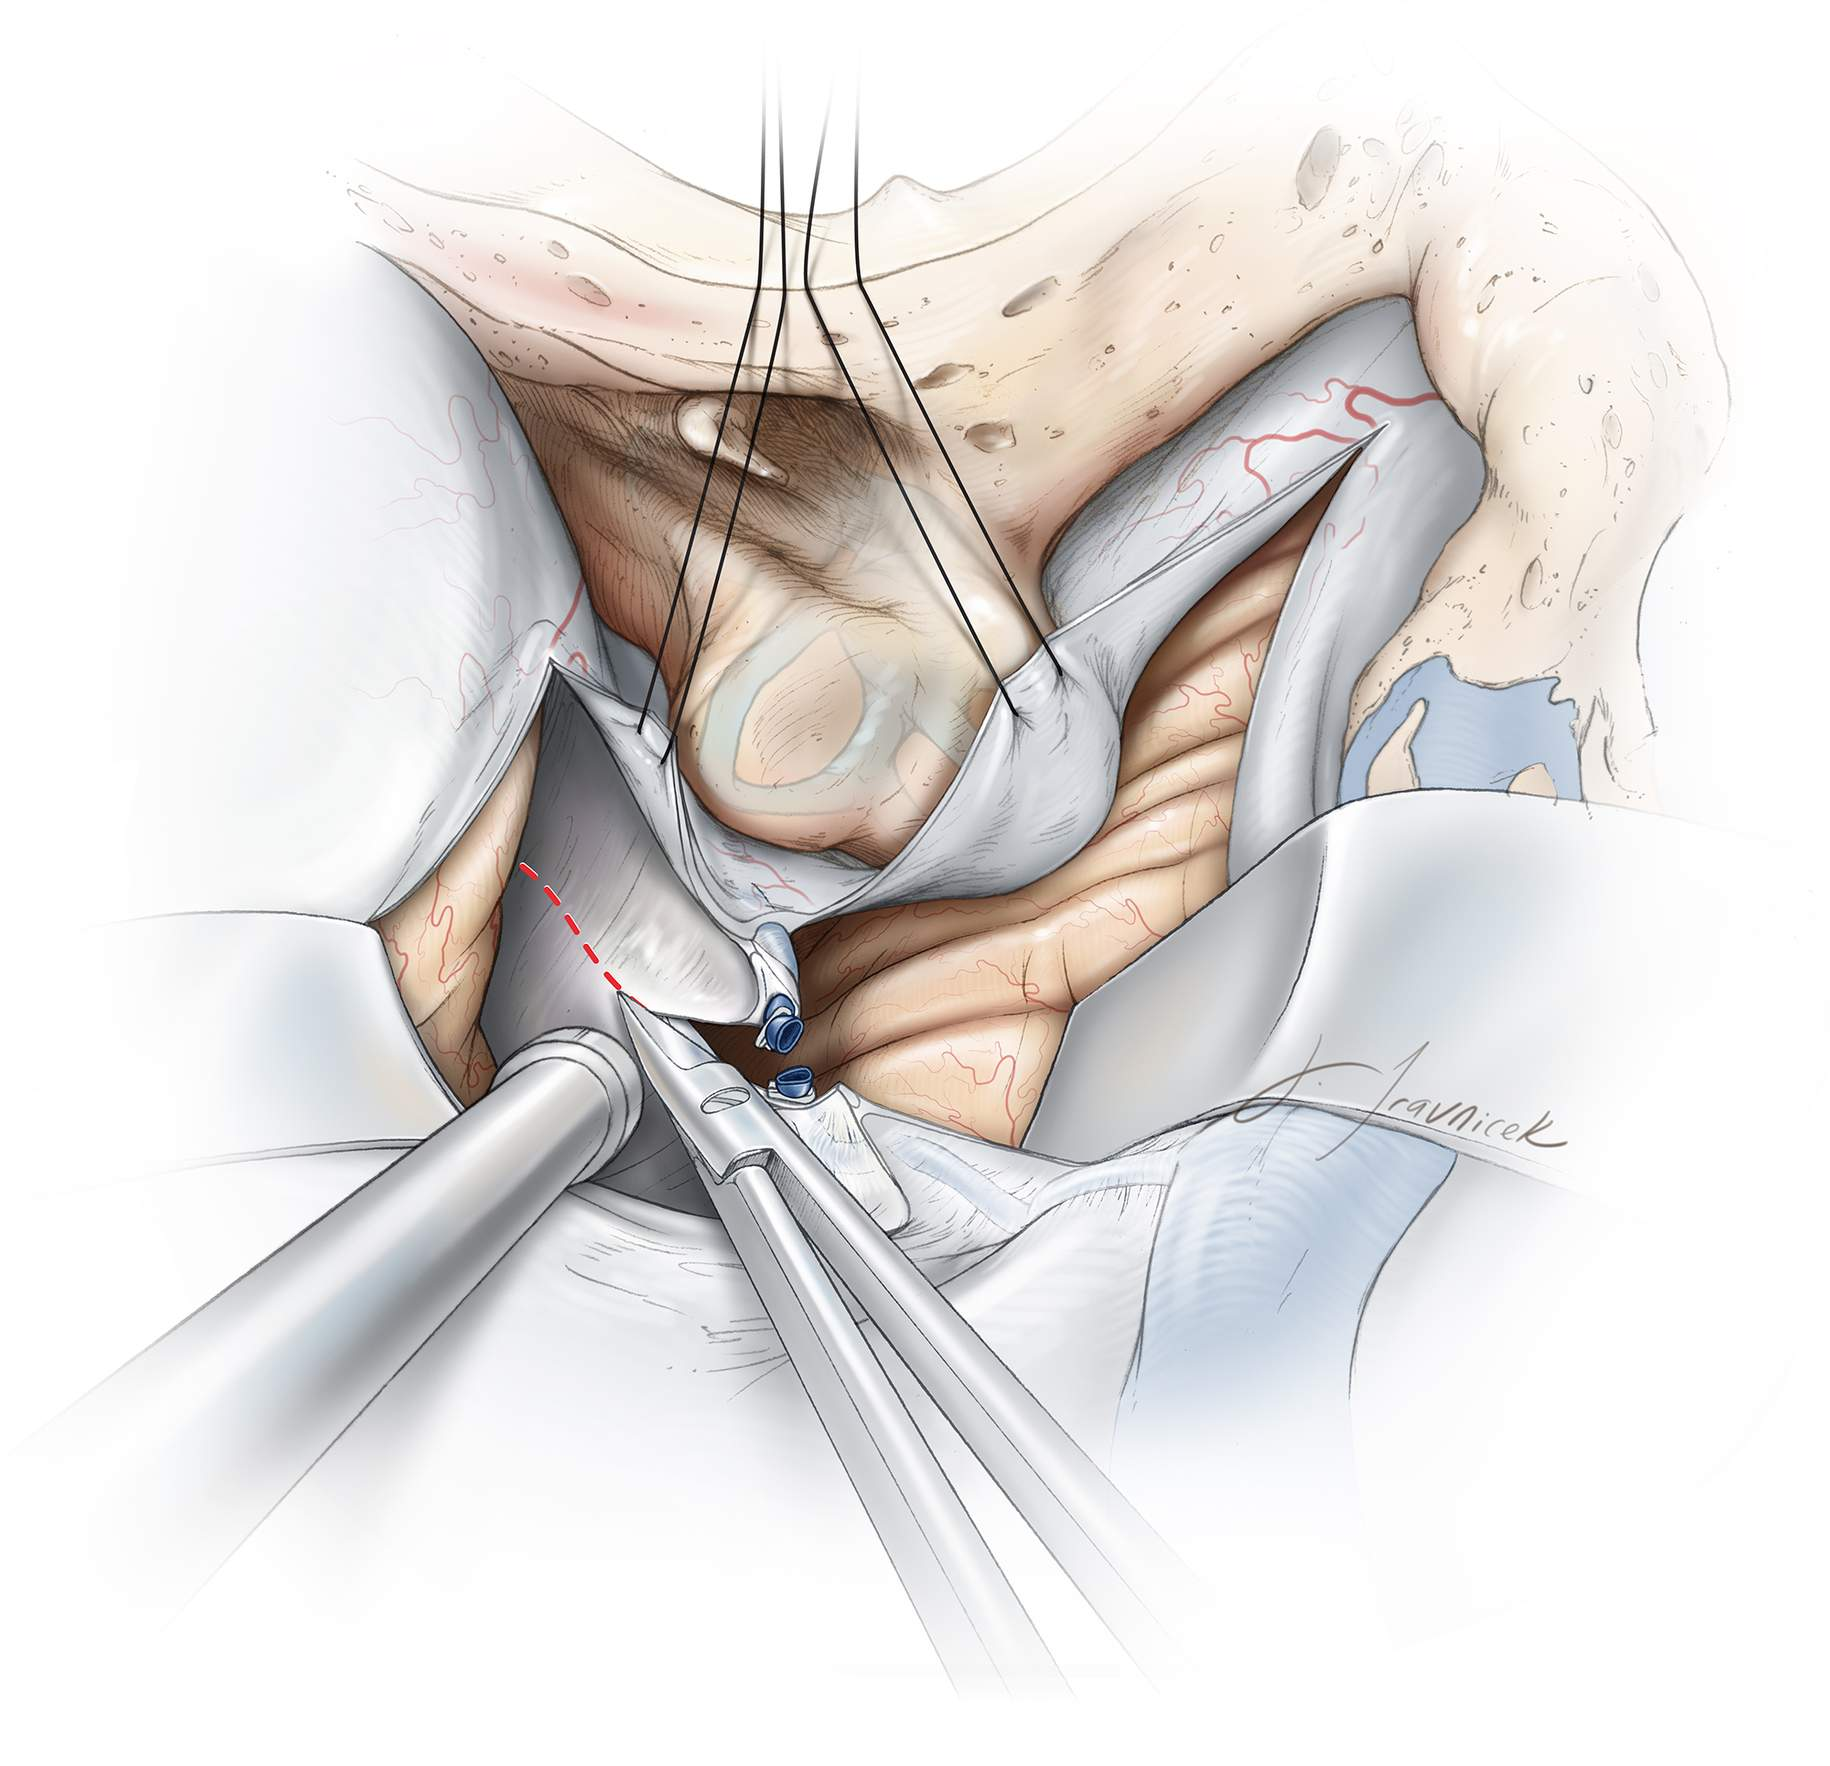 Figure 9: After the superior petrosal sinus is divided, the dural incision is continued on the tentorium parallel to the edge of the petrous pyramid toward the tentorial incisura. Completing the dural incision more posteriorly will lead to a tentorial flap obstructing the surgical corridor. Note the location of the retractor blades and dural retention sutures.